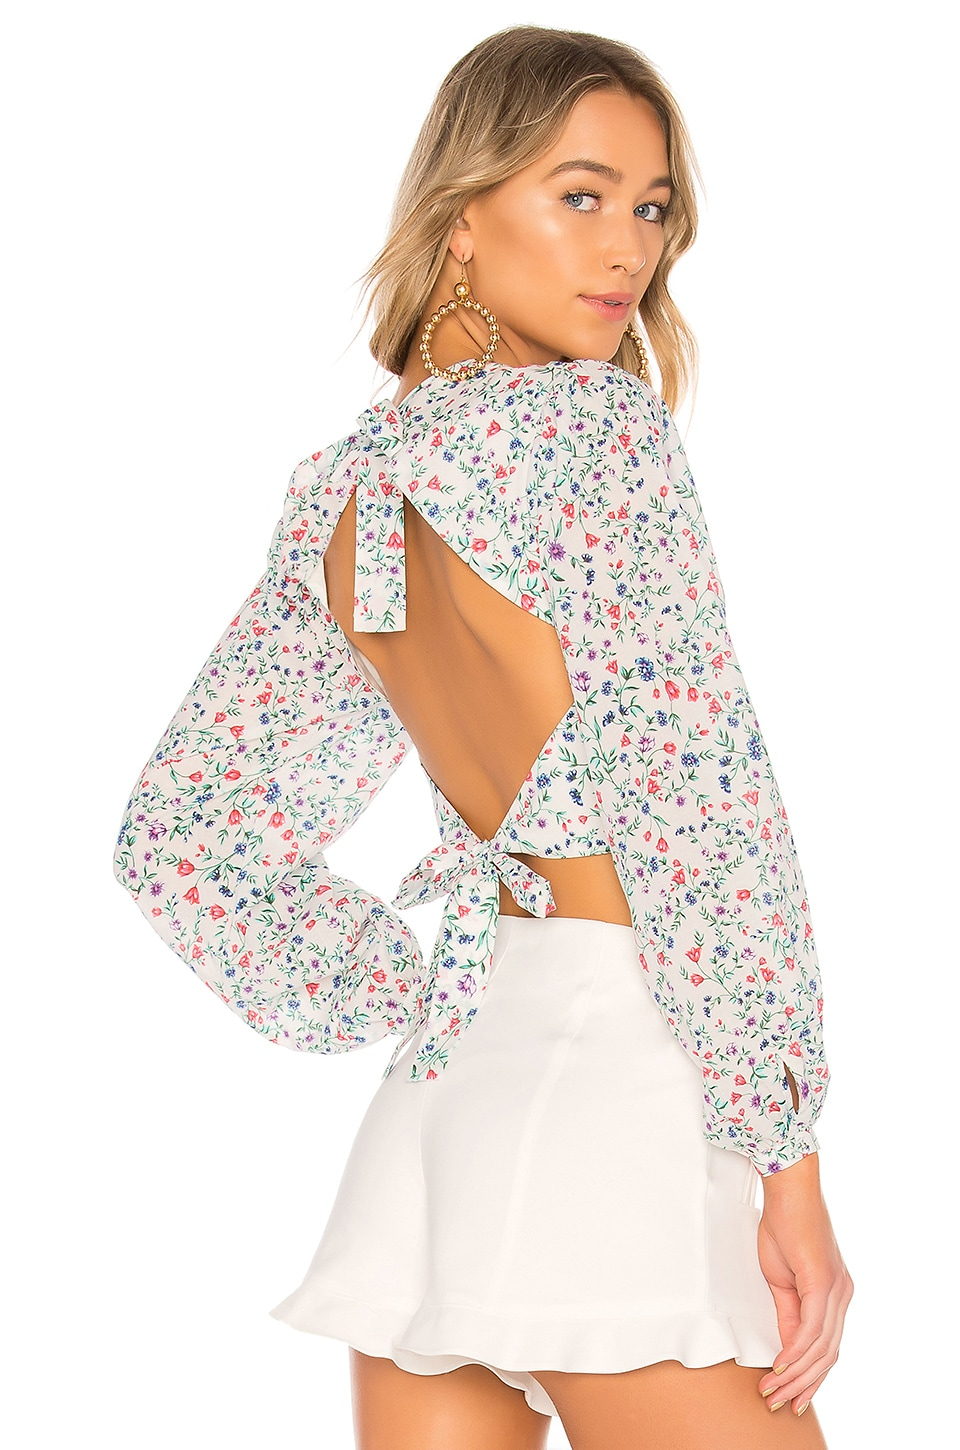 Lovers + Friends K Blouse in June Ditsy Floral